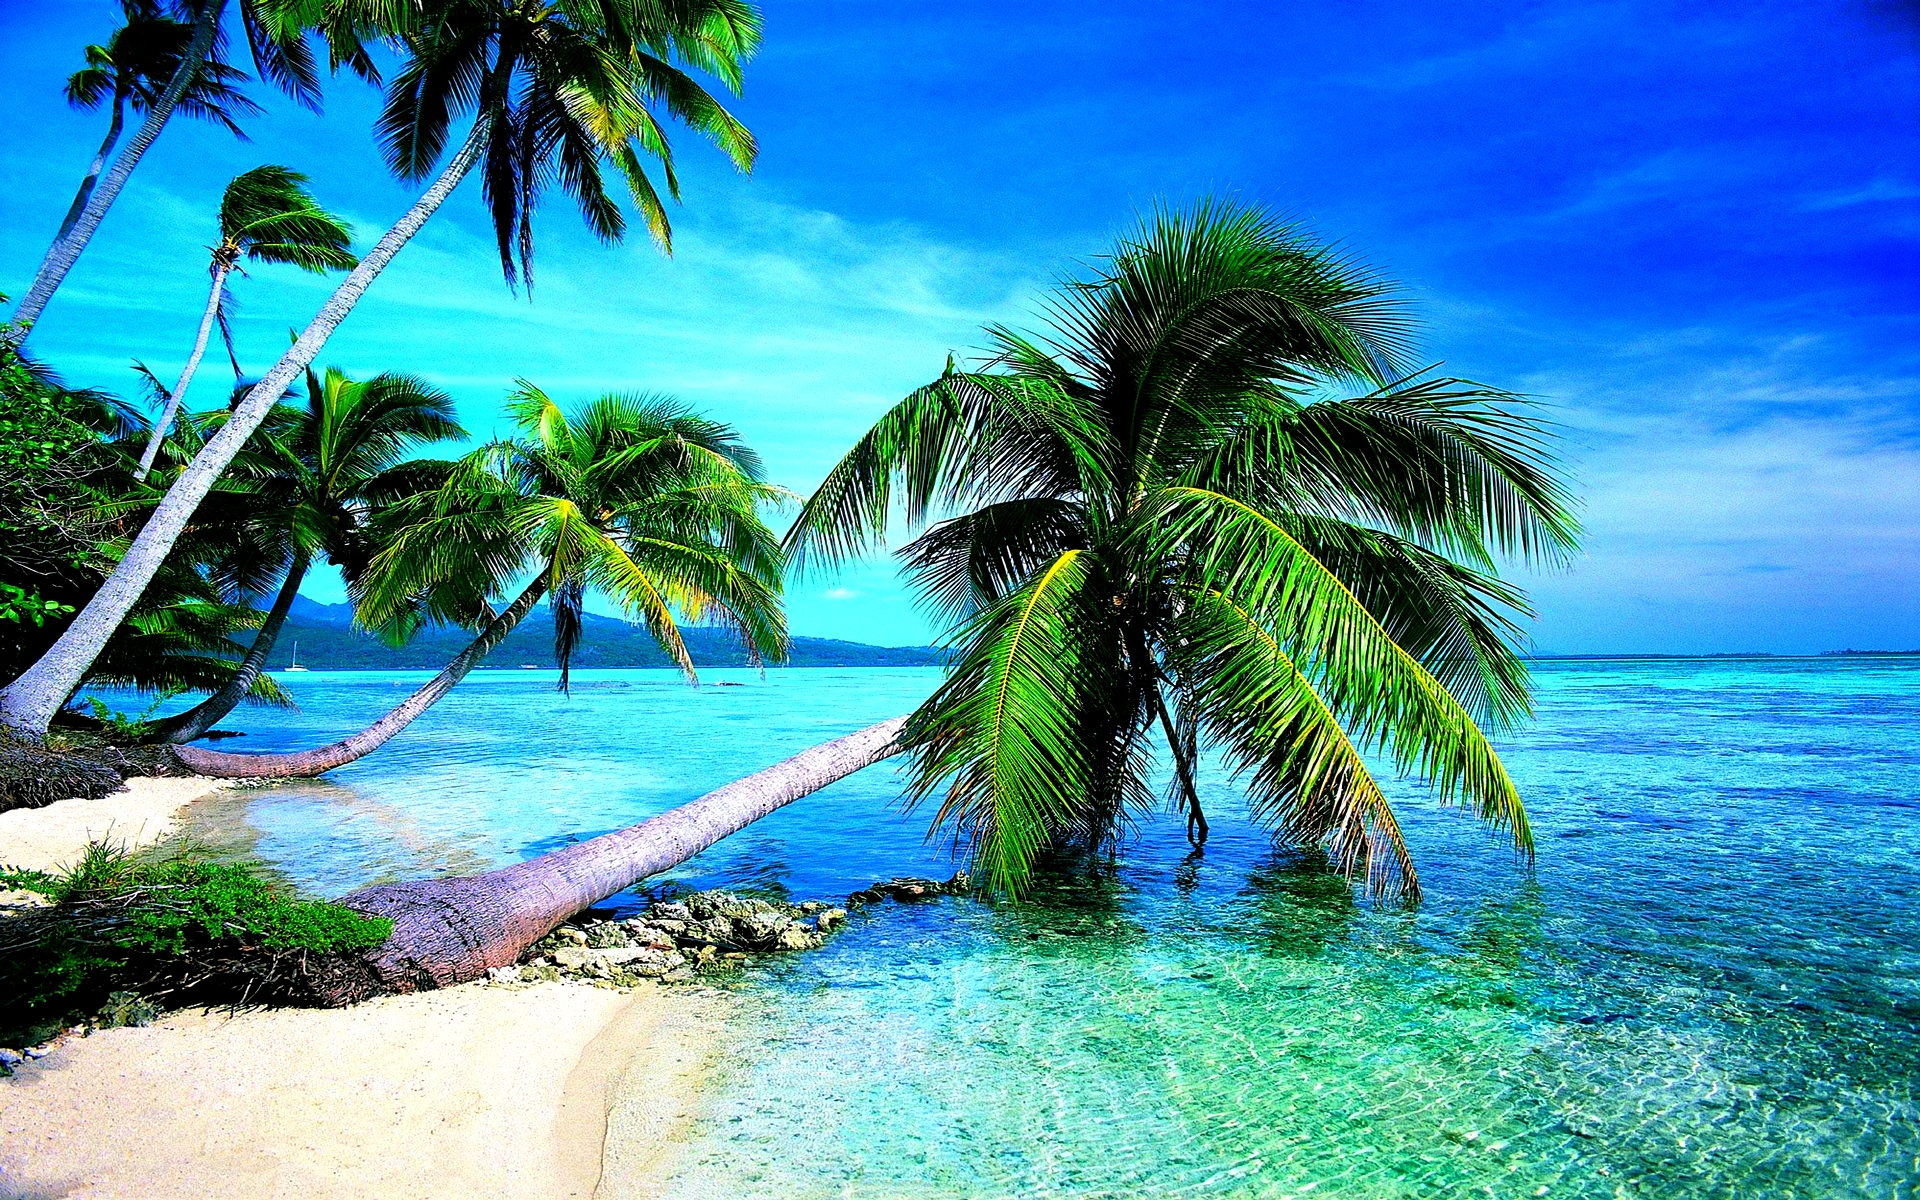 tropical beach widescreen wallpapers in hd download beach images 1920x1200